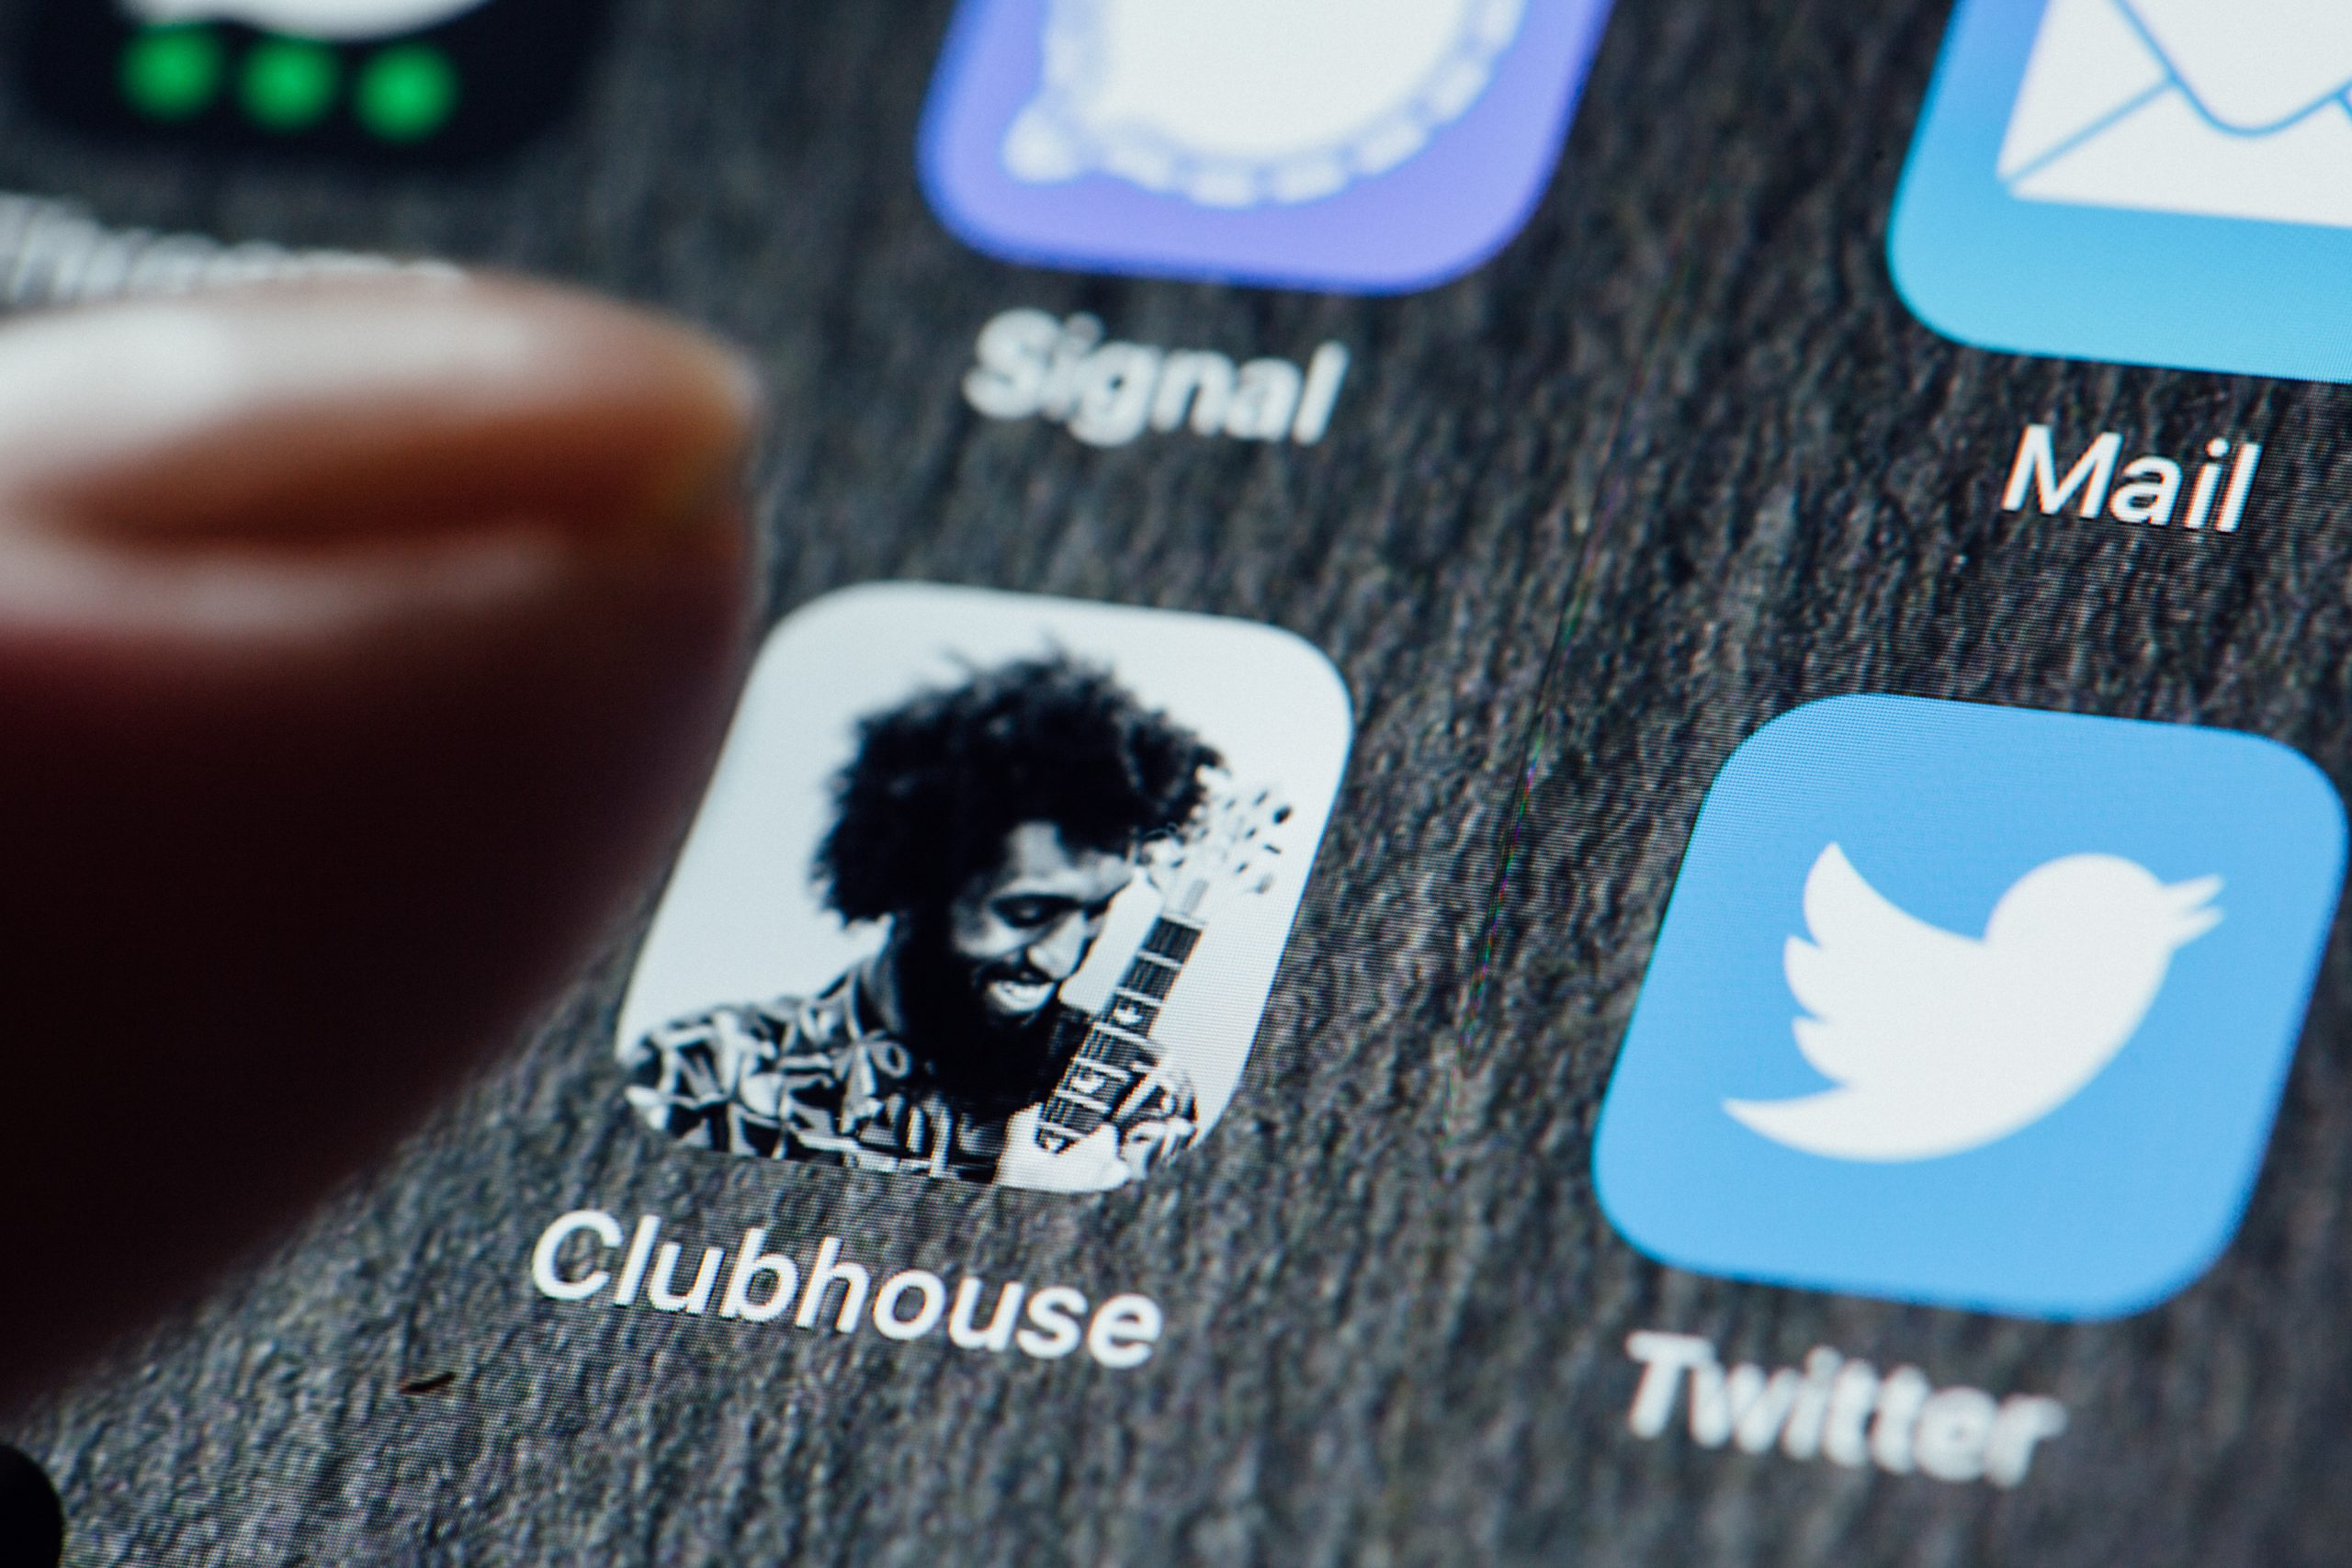 What Is Clubhouse and Why Should I Be On It?